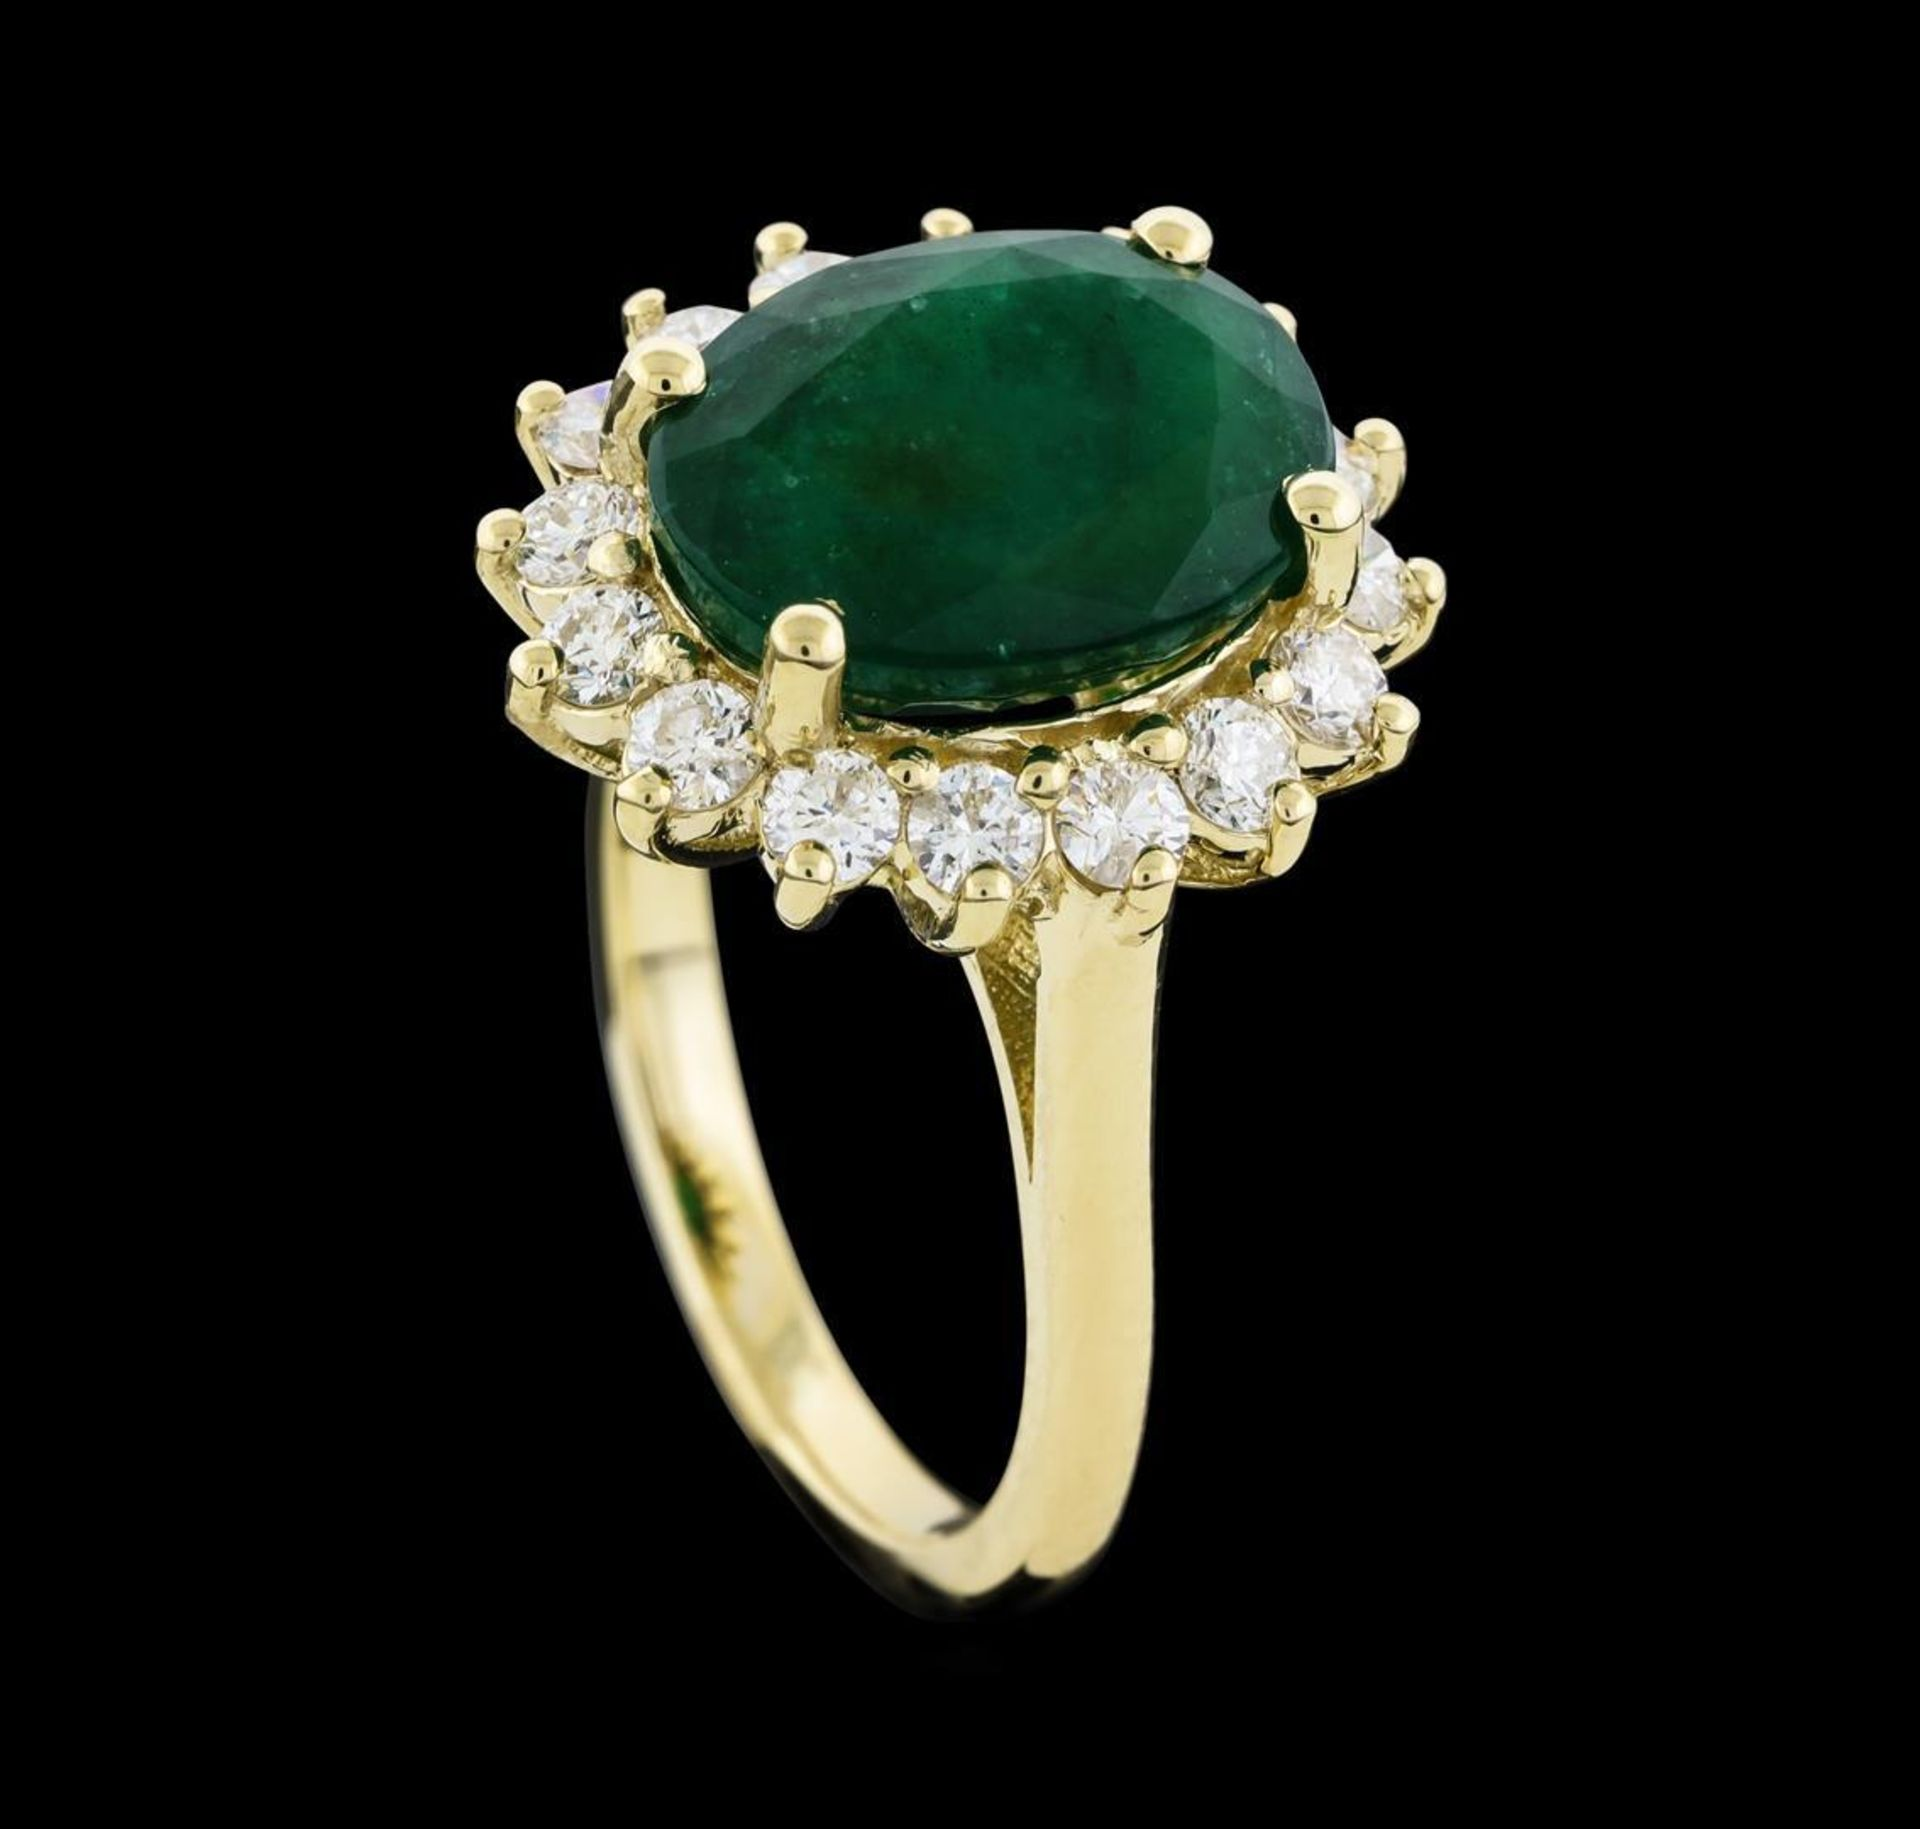 4.52 ctw Emerald and Diamond Ring - 14KT Yellow Gold - Image 4 of 5